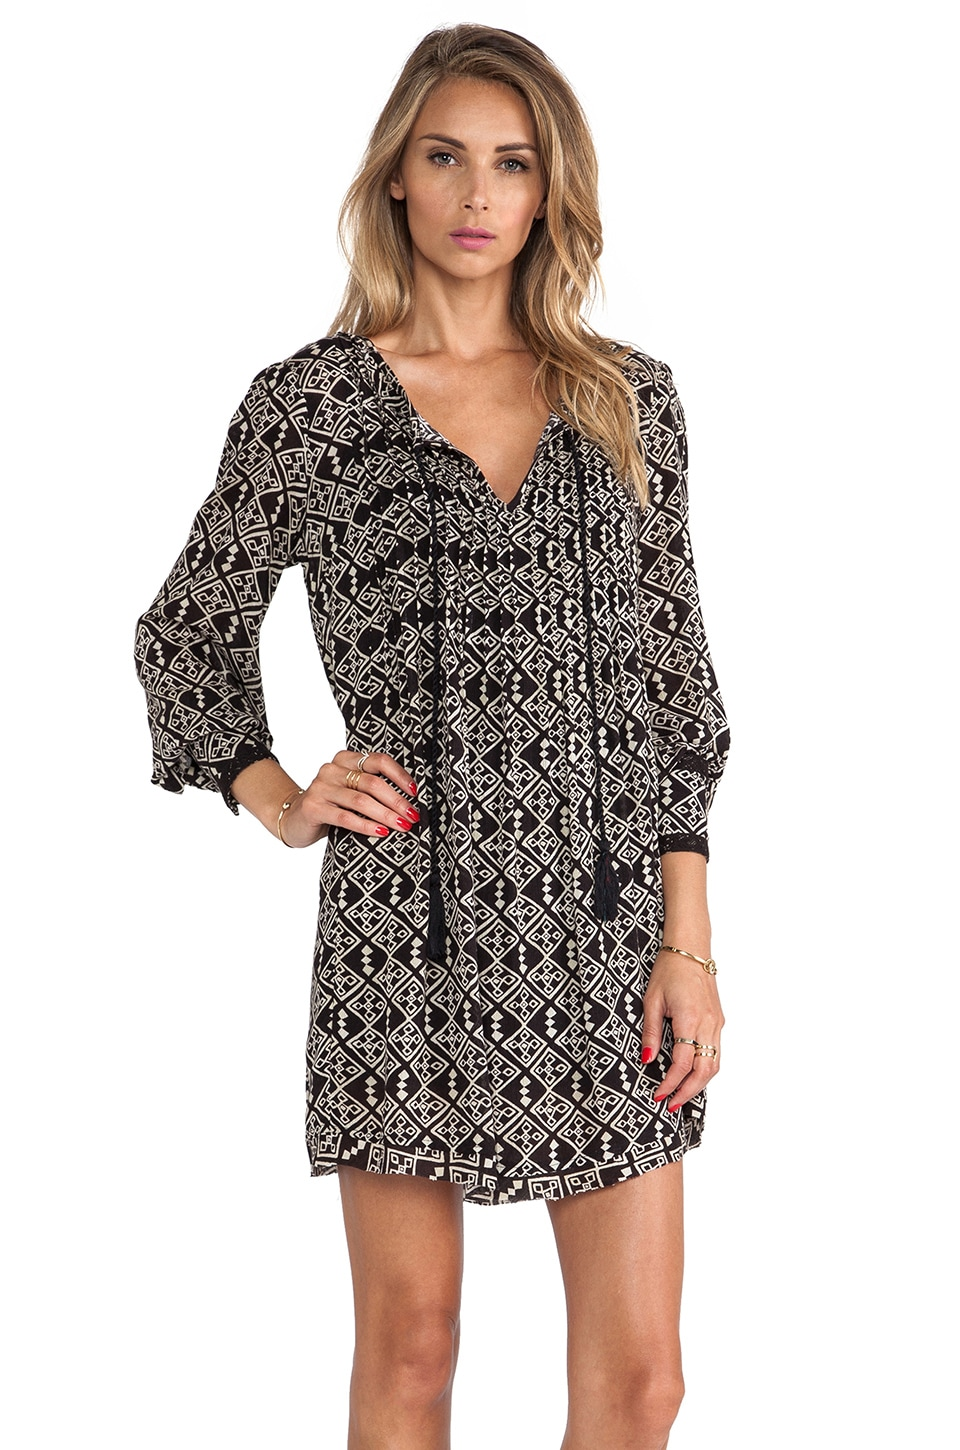 Free People Marlow Dress in Black Combo